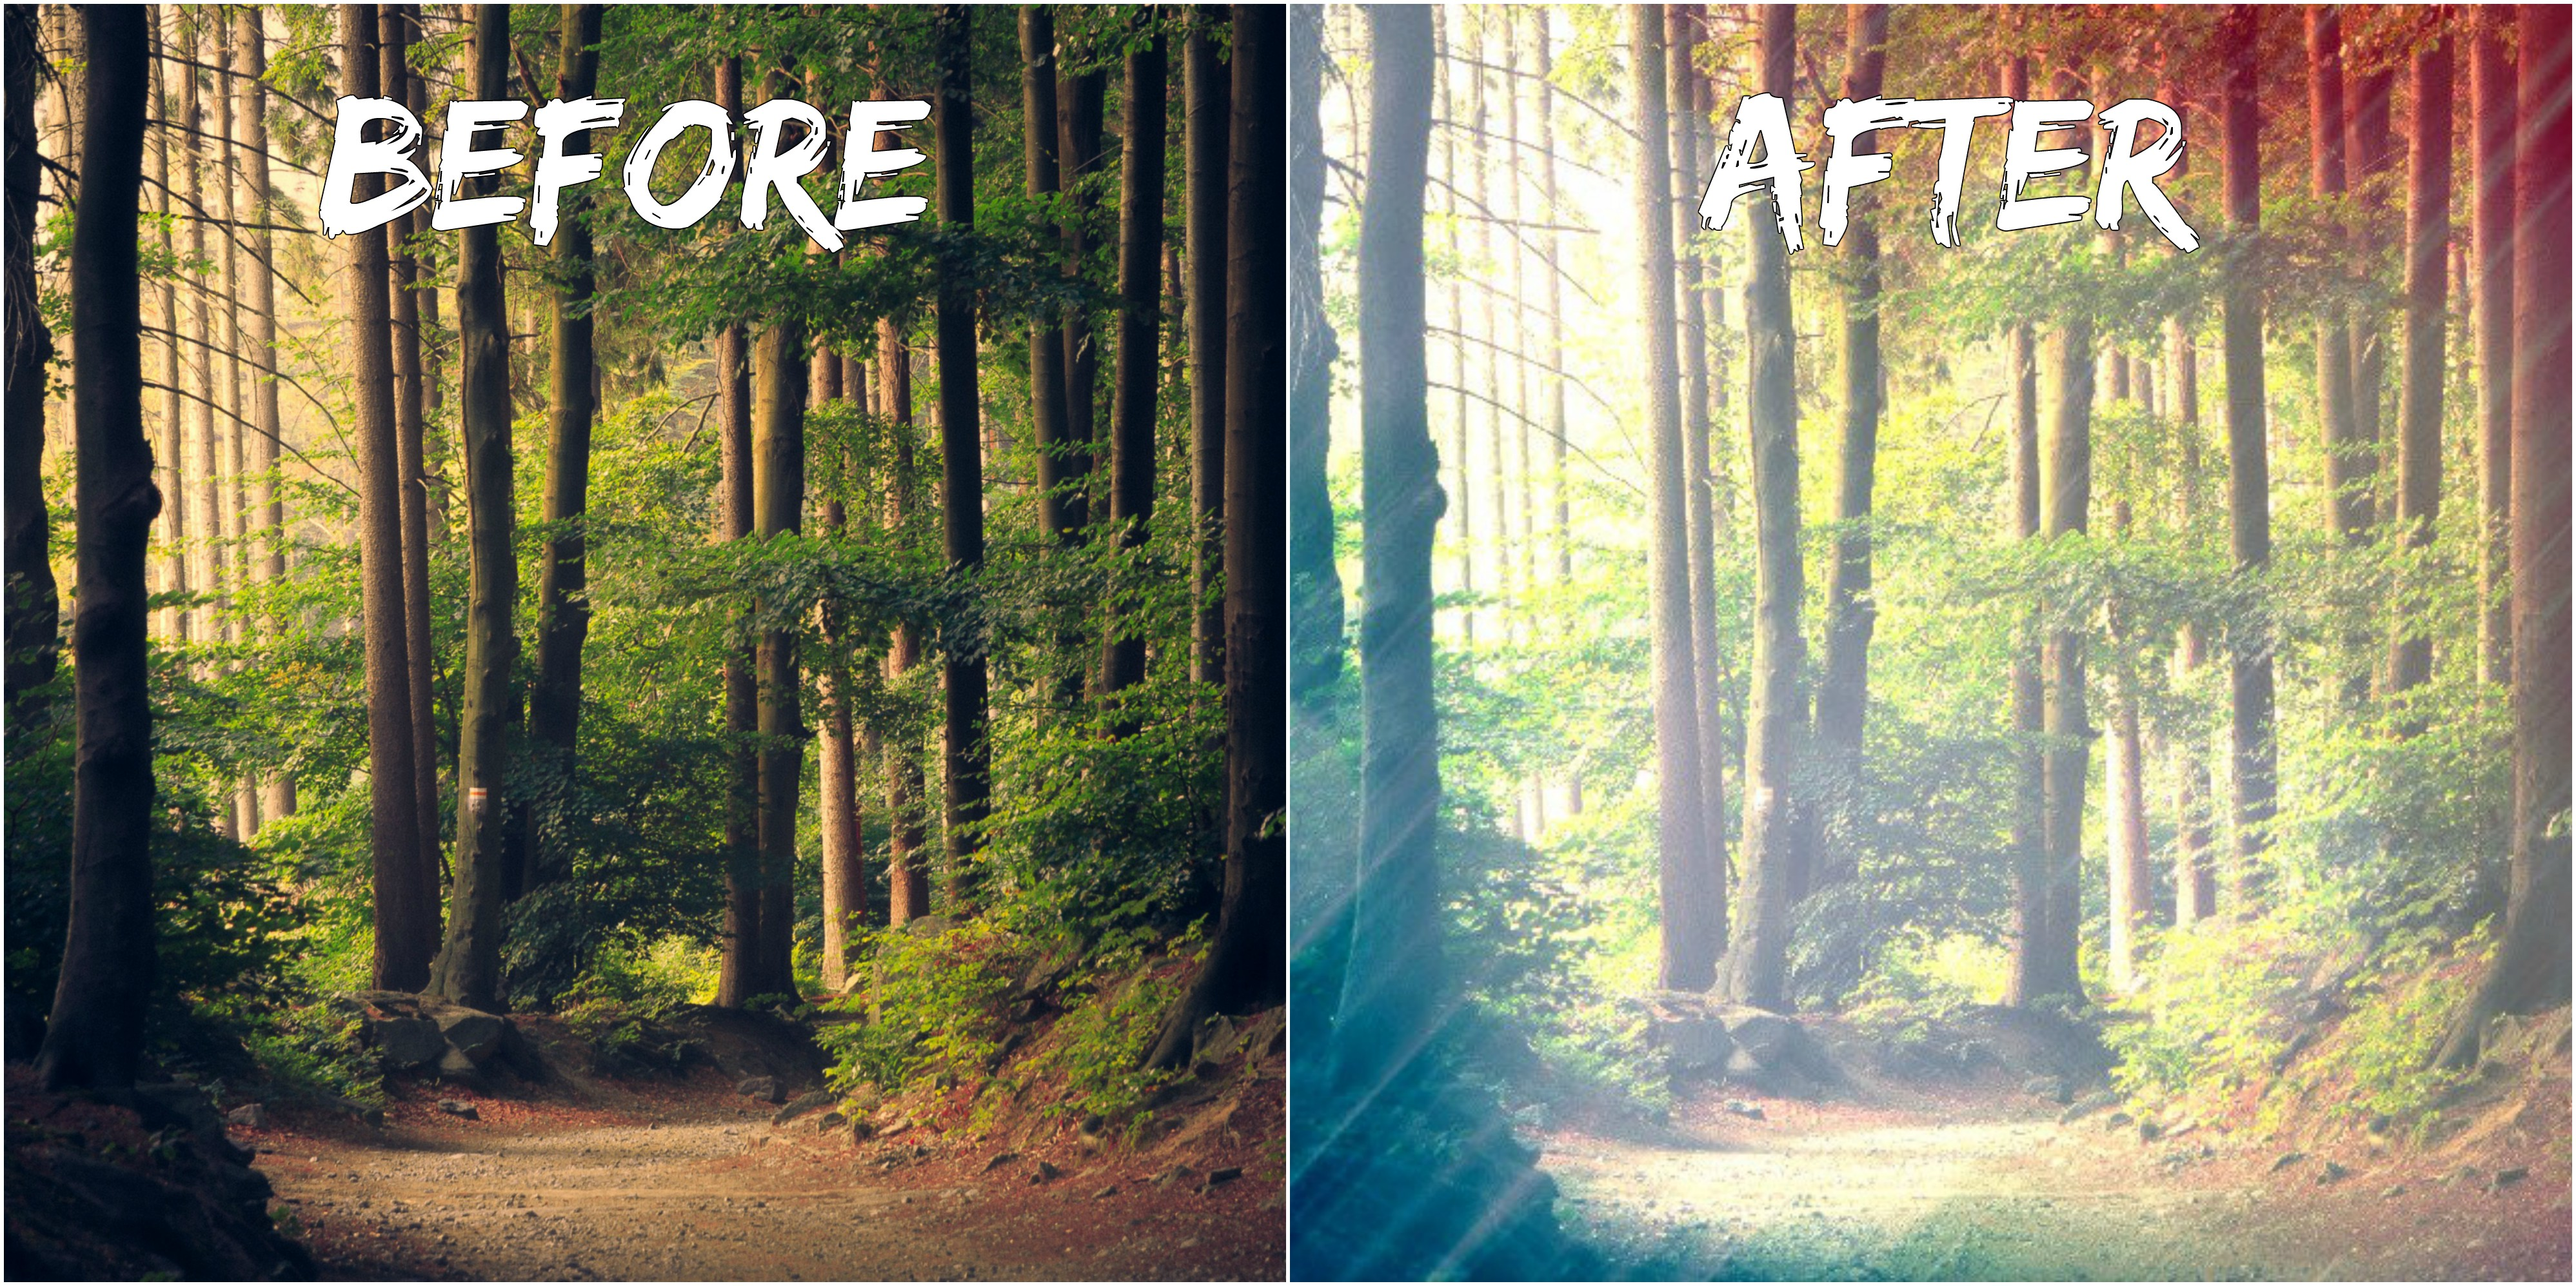 transform your image with this nice effect! #005